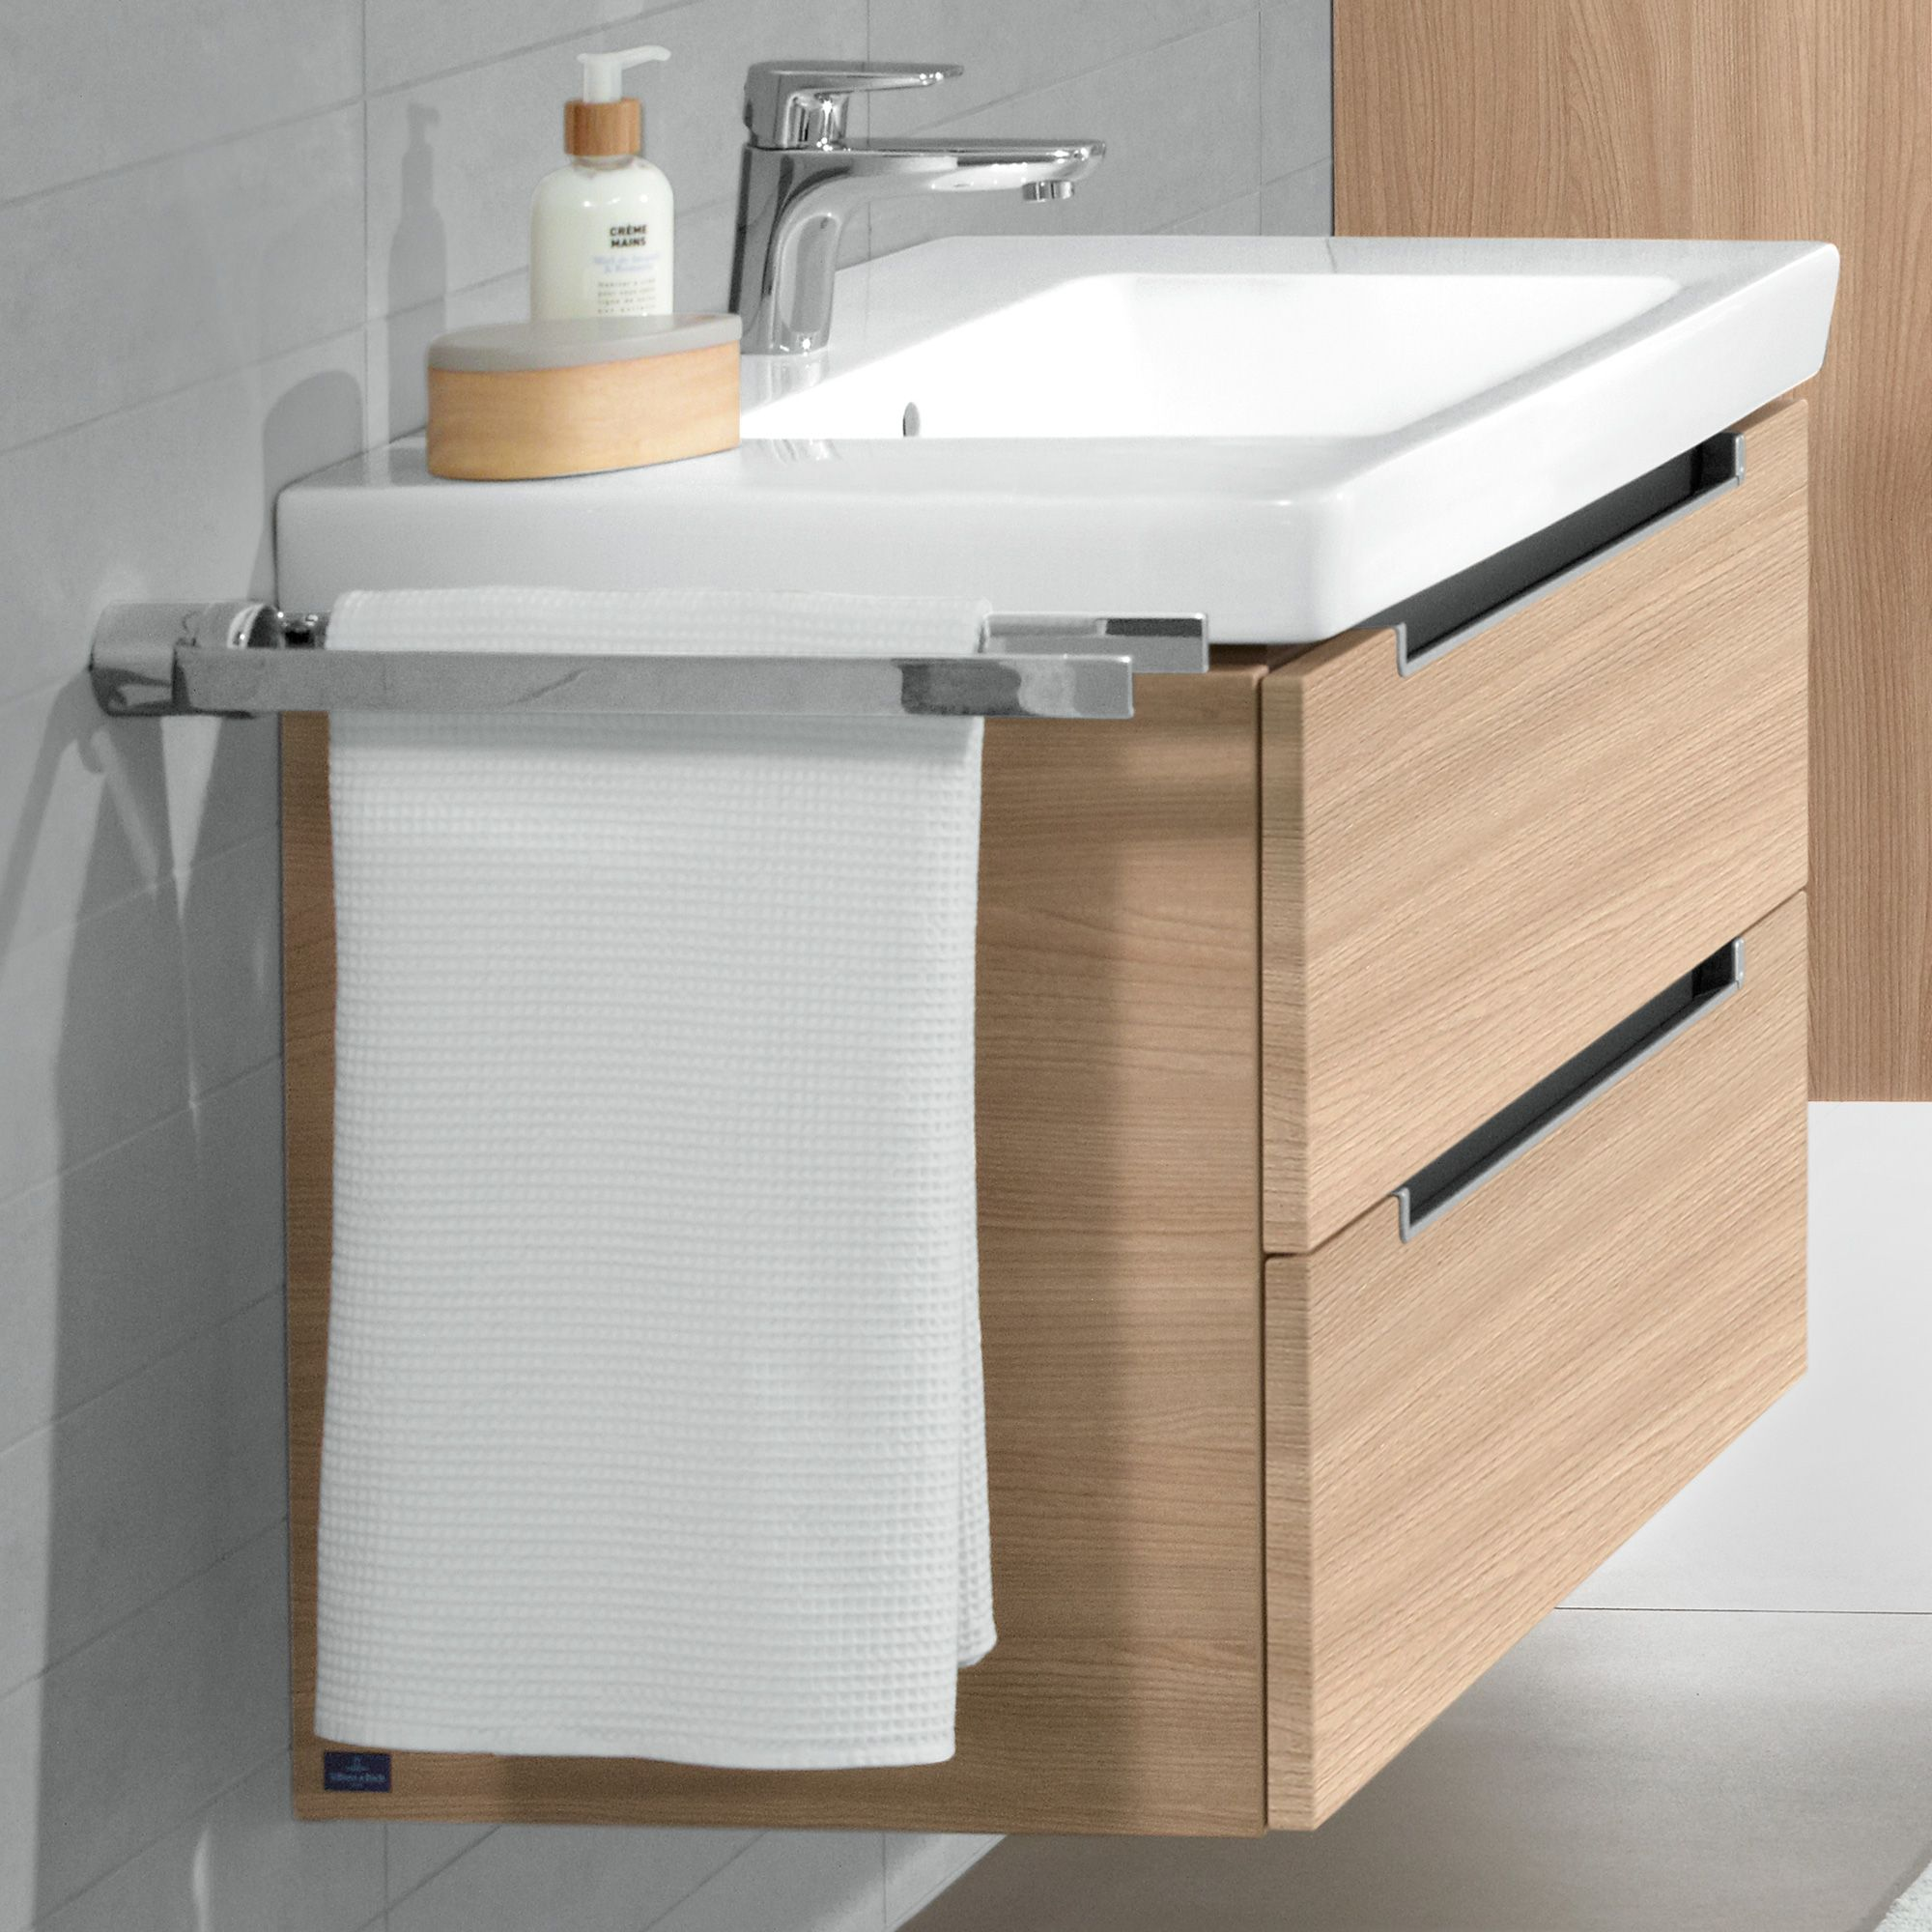 Villeroy and boch bathroom sink - Villeroy Boch Elm Impresso Subway 2 0 A68900